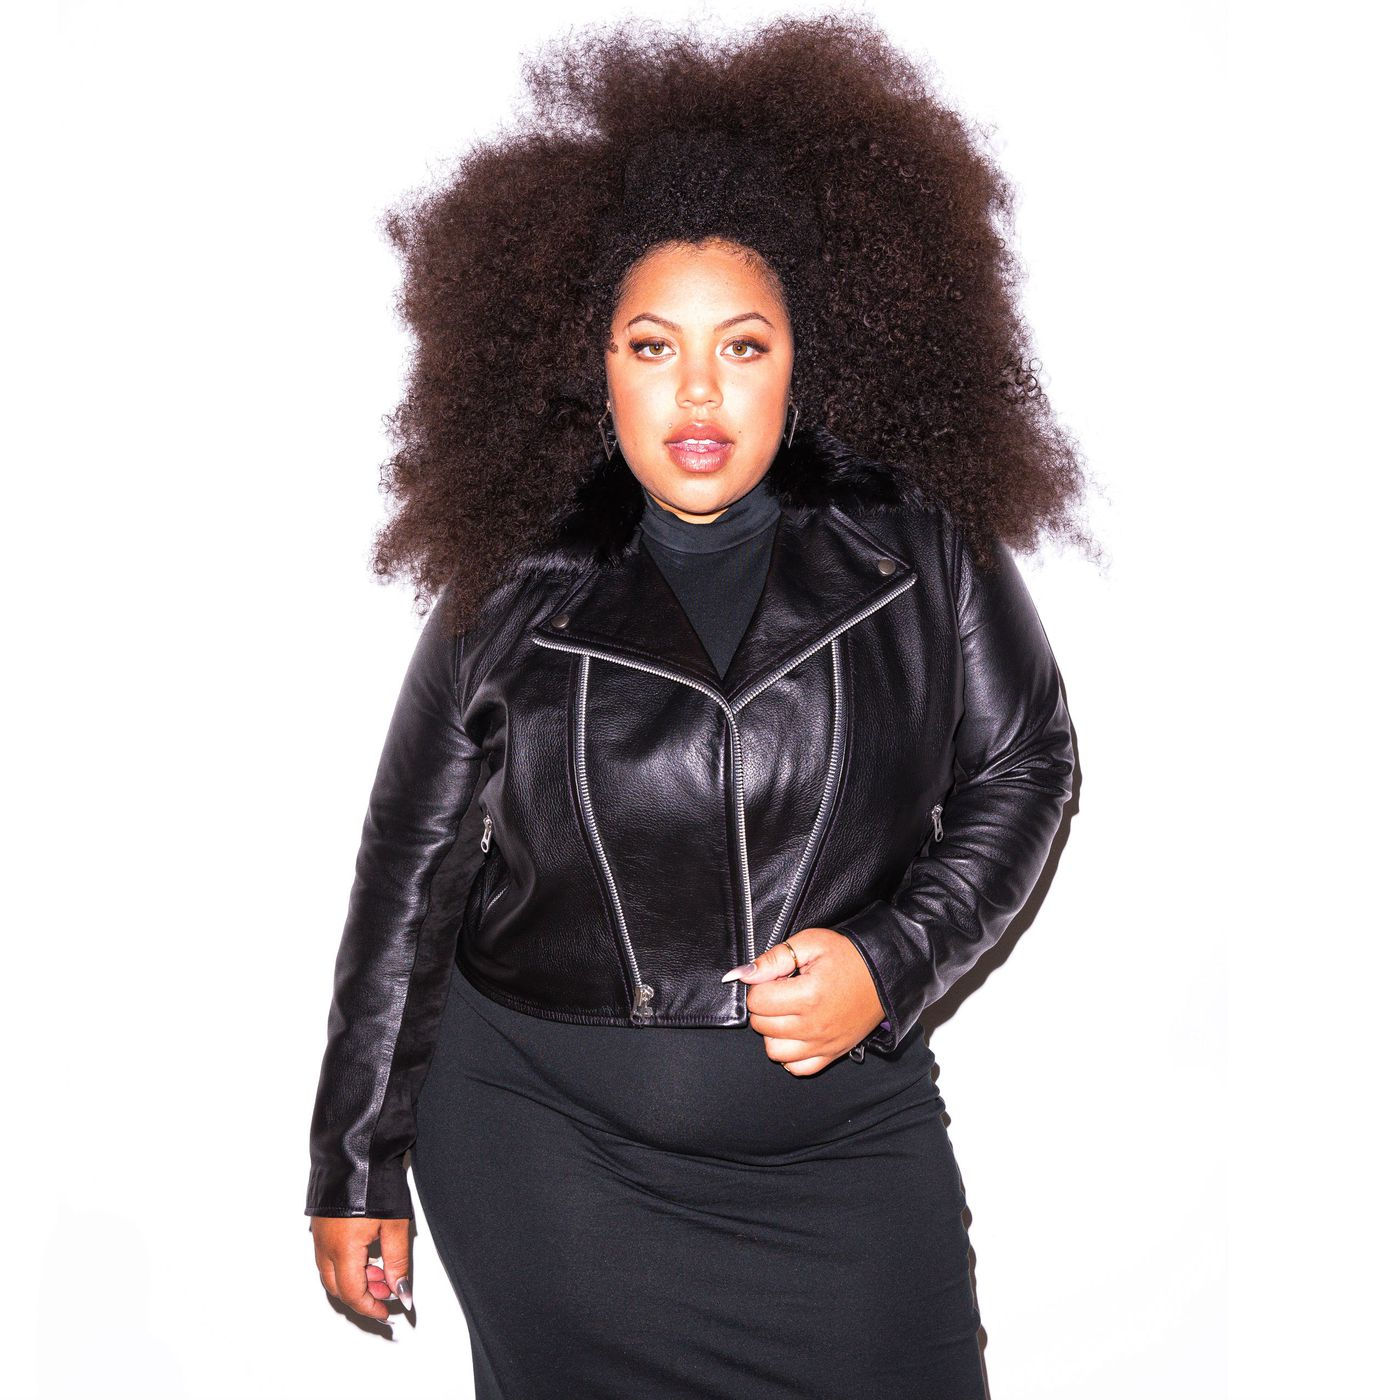 18b0e0213 Meet the Designer Making the Best Plus-Size Leather Jackets - Racked